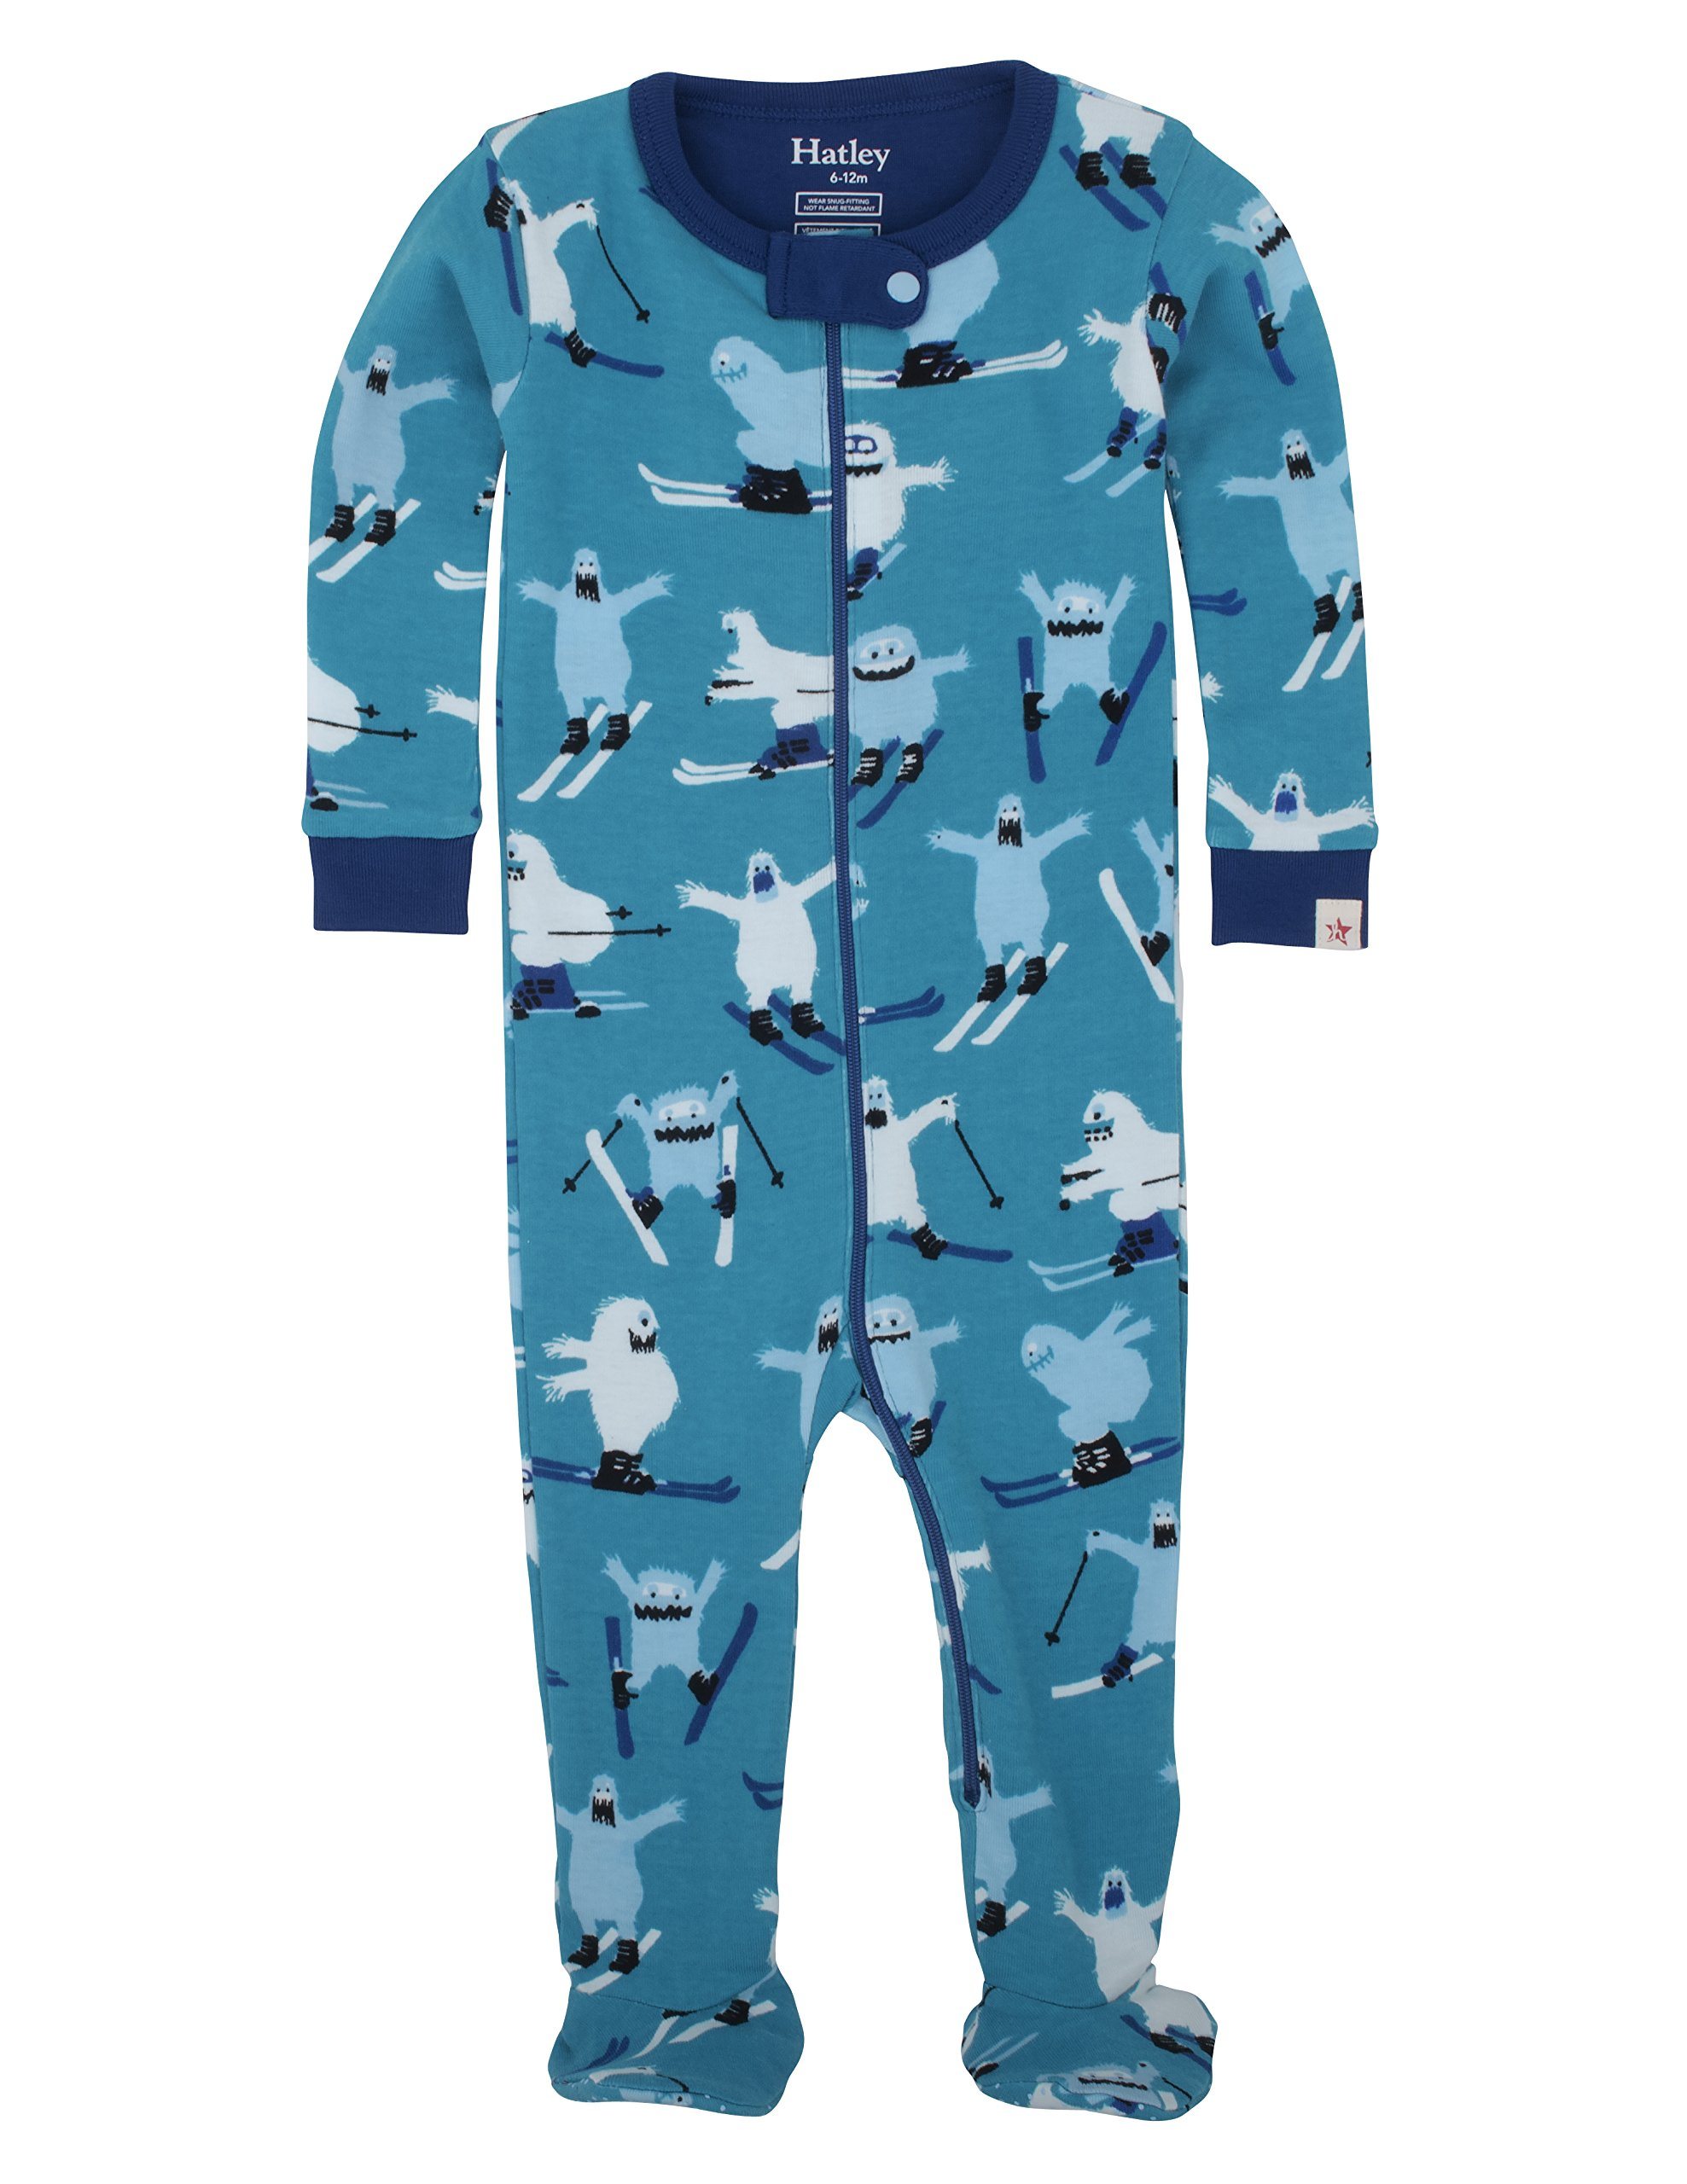 Hatley Boys' Footed Coverall, Ski Monsters, 3-6